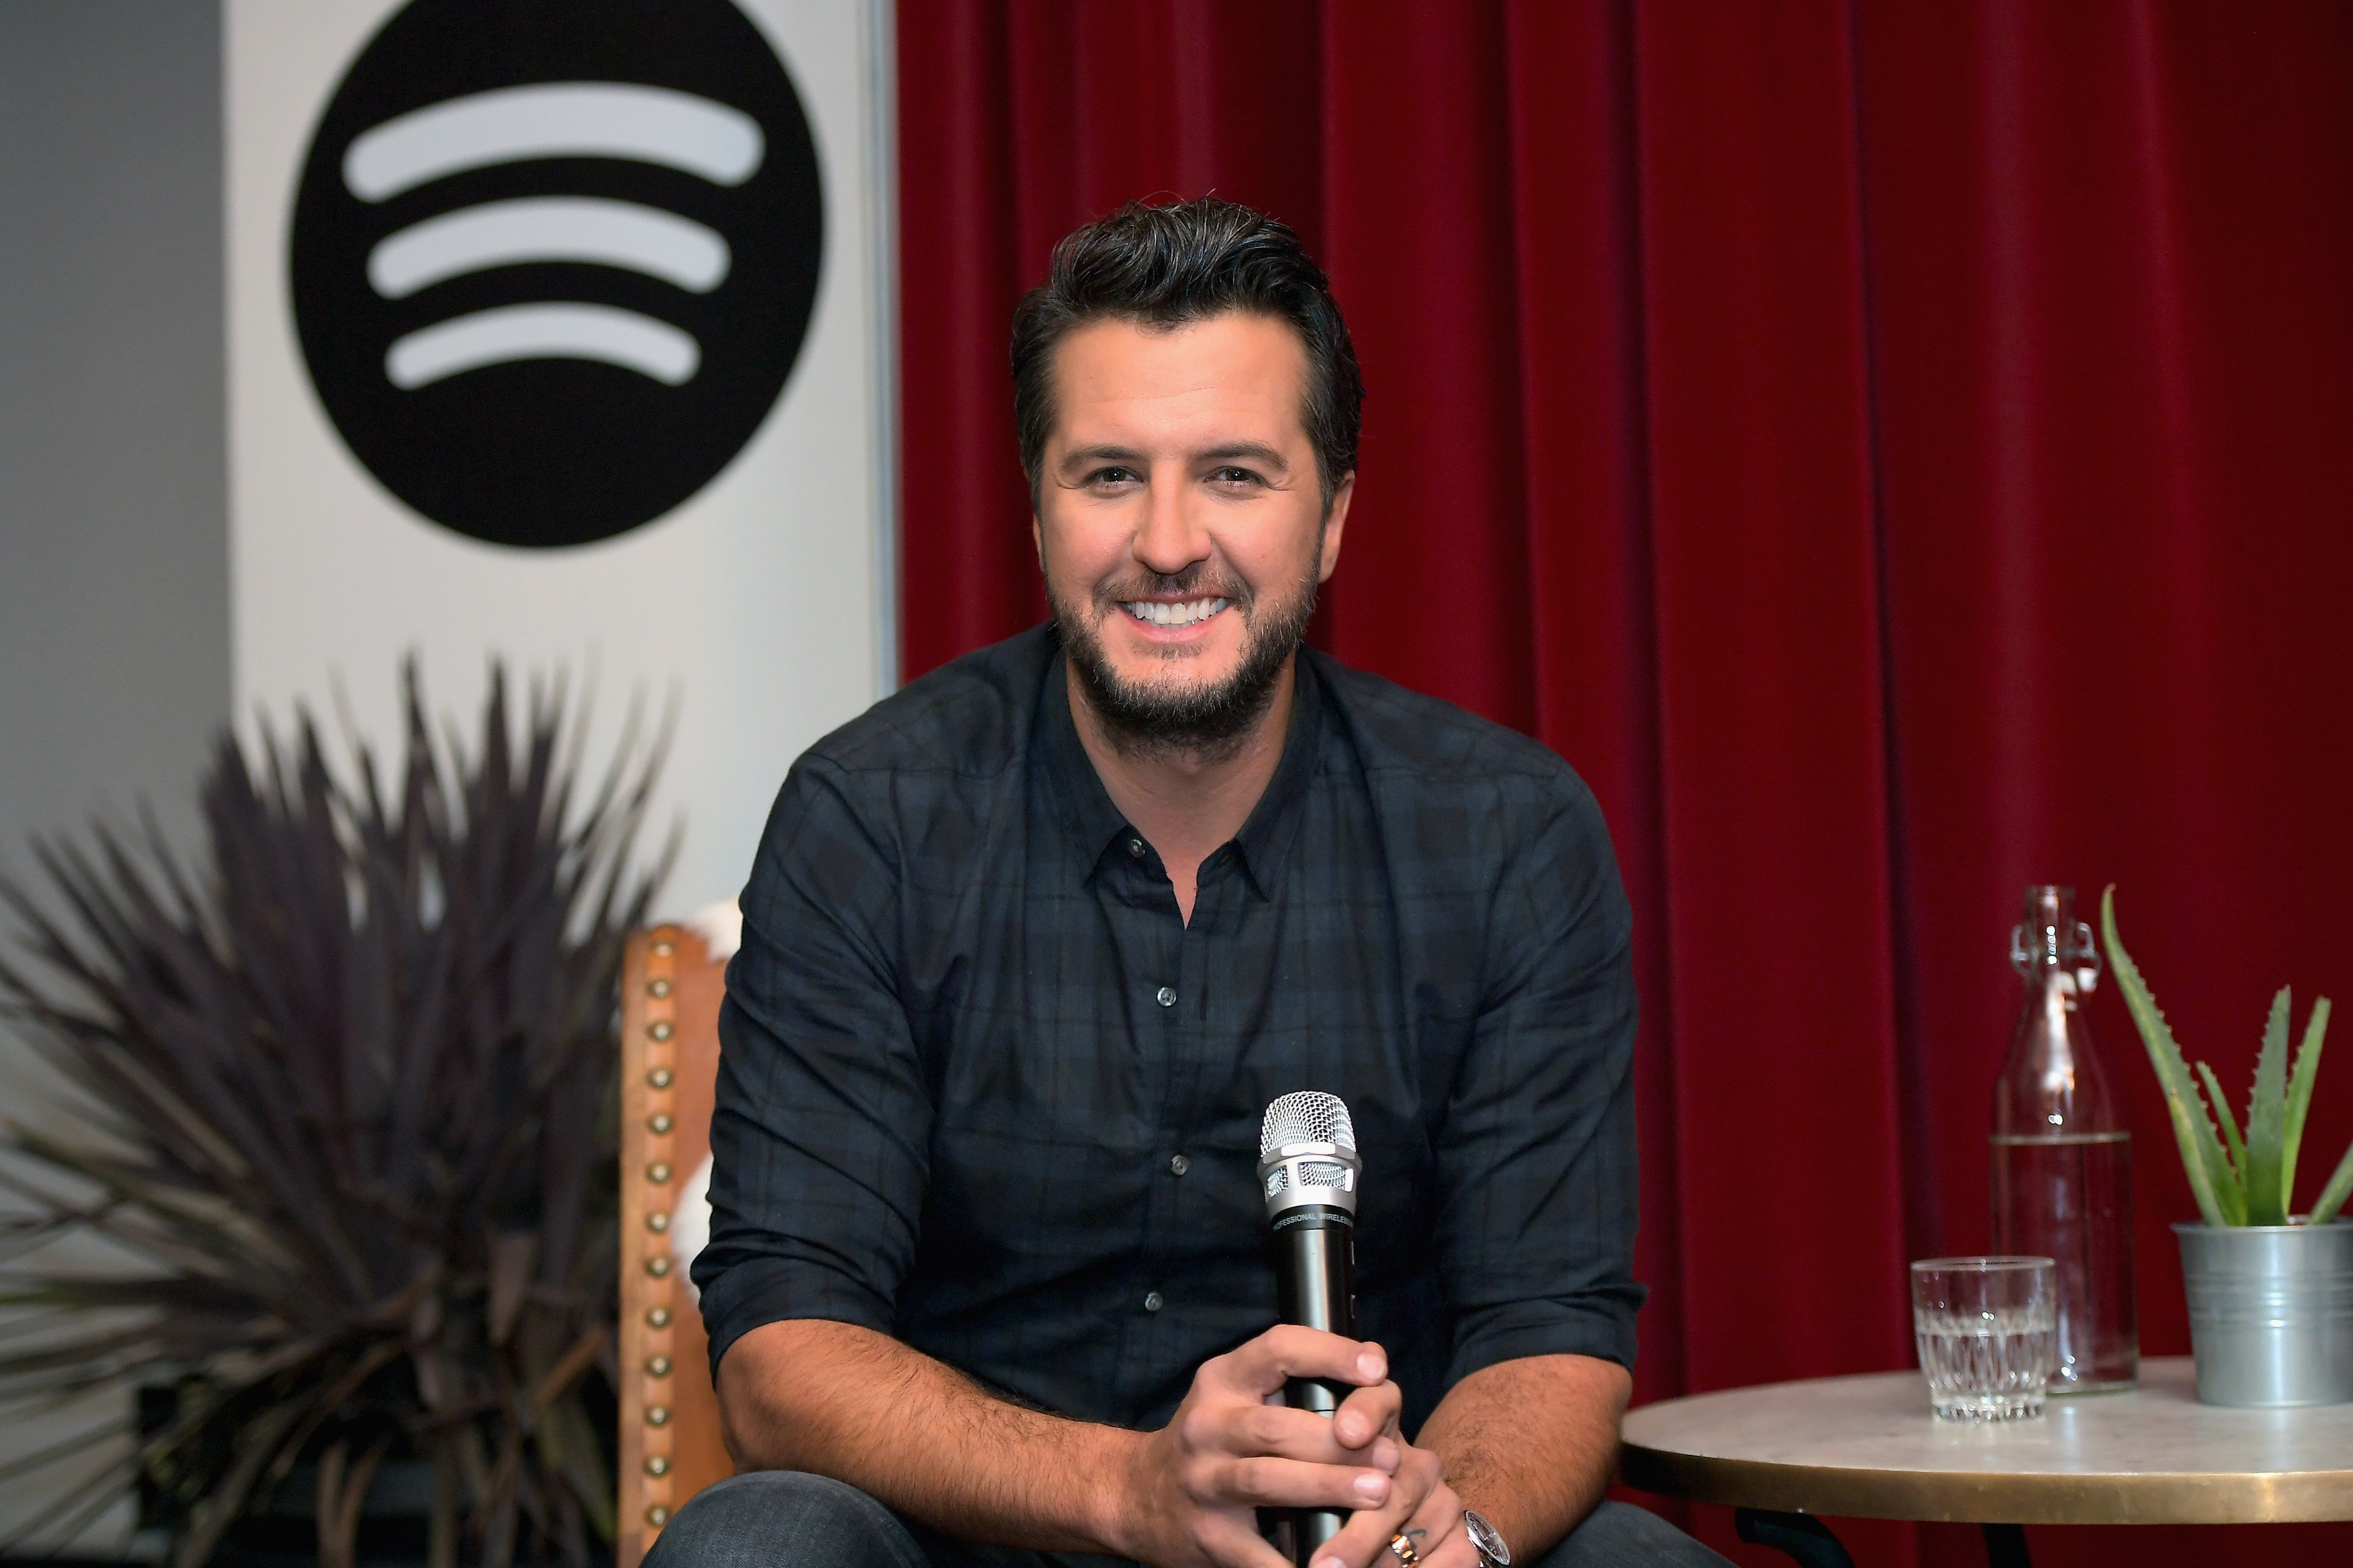 Country Music star Luke Bryan during his 2017 meeting with his fans in Los Angeles. | Photo: Getty Images